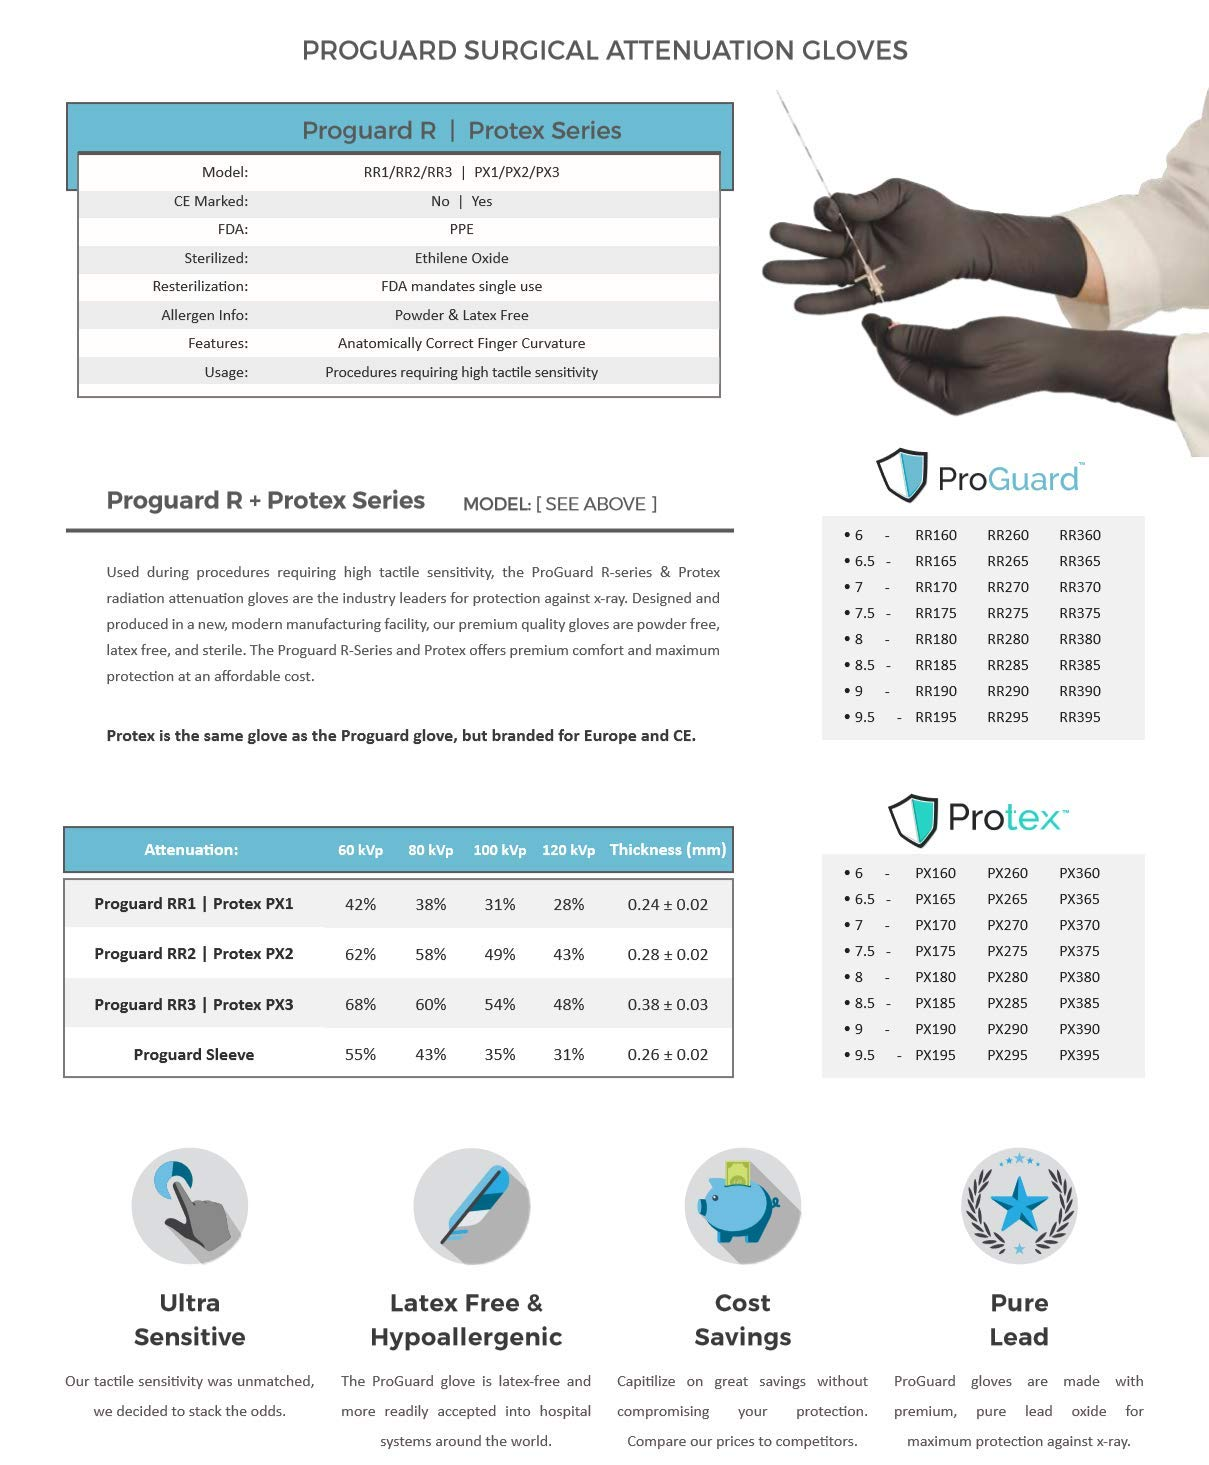 ProGuard Leaded Surgical Radiation Attenuation Gloves - Powder & Latex Free, Disposable (9.5, RR2)